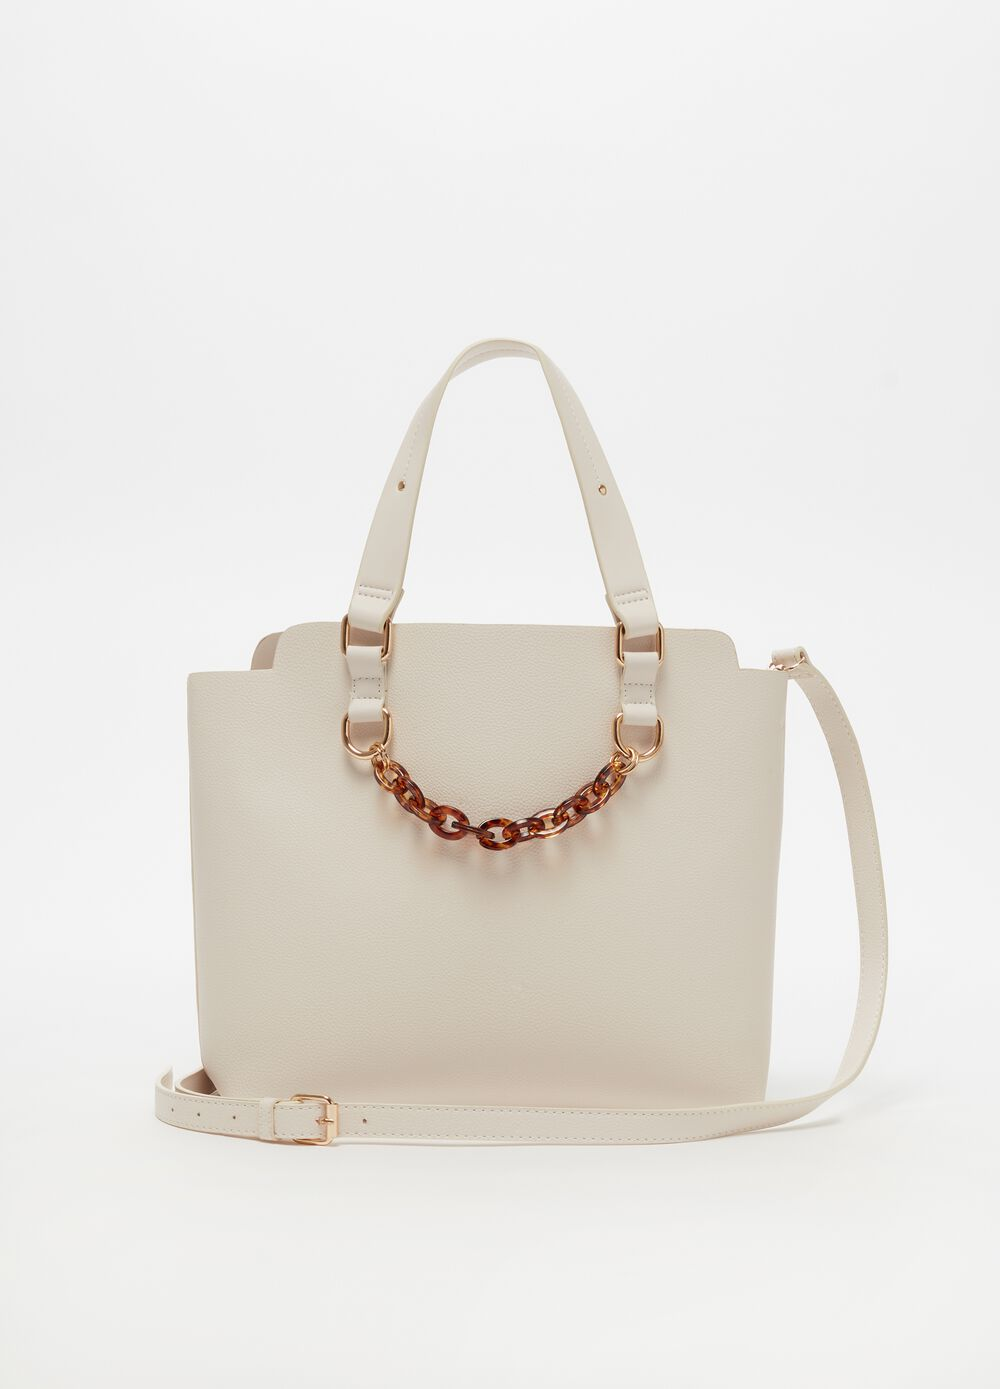 Tote bag with internal pouch